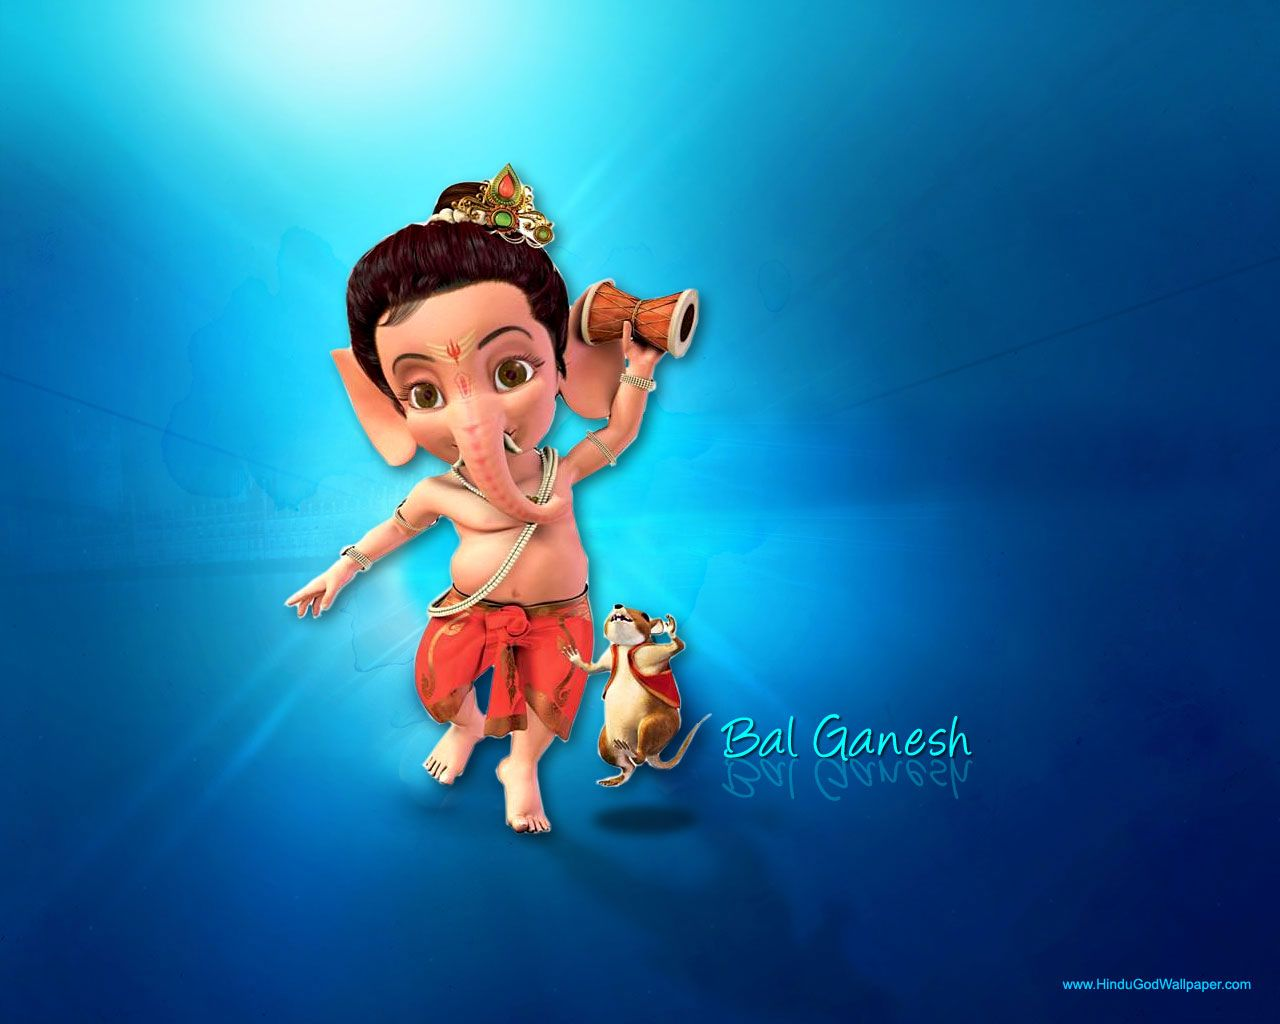 bal ganesha hd wallpapers download bal ganesh wallpapers